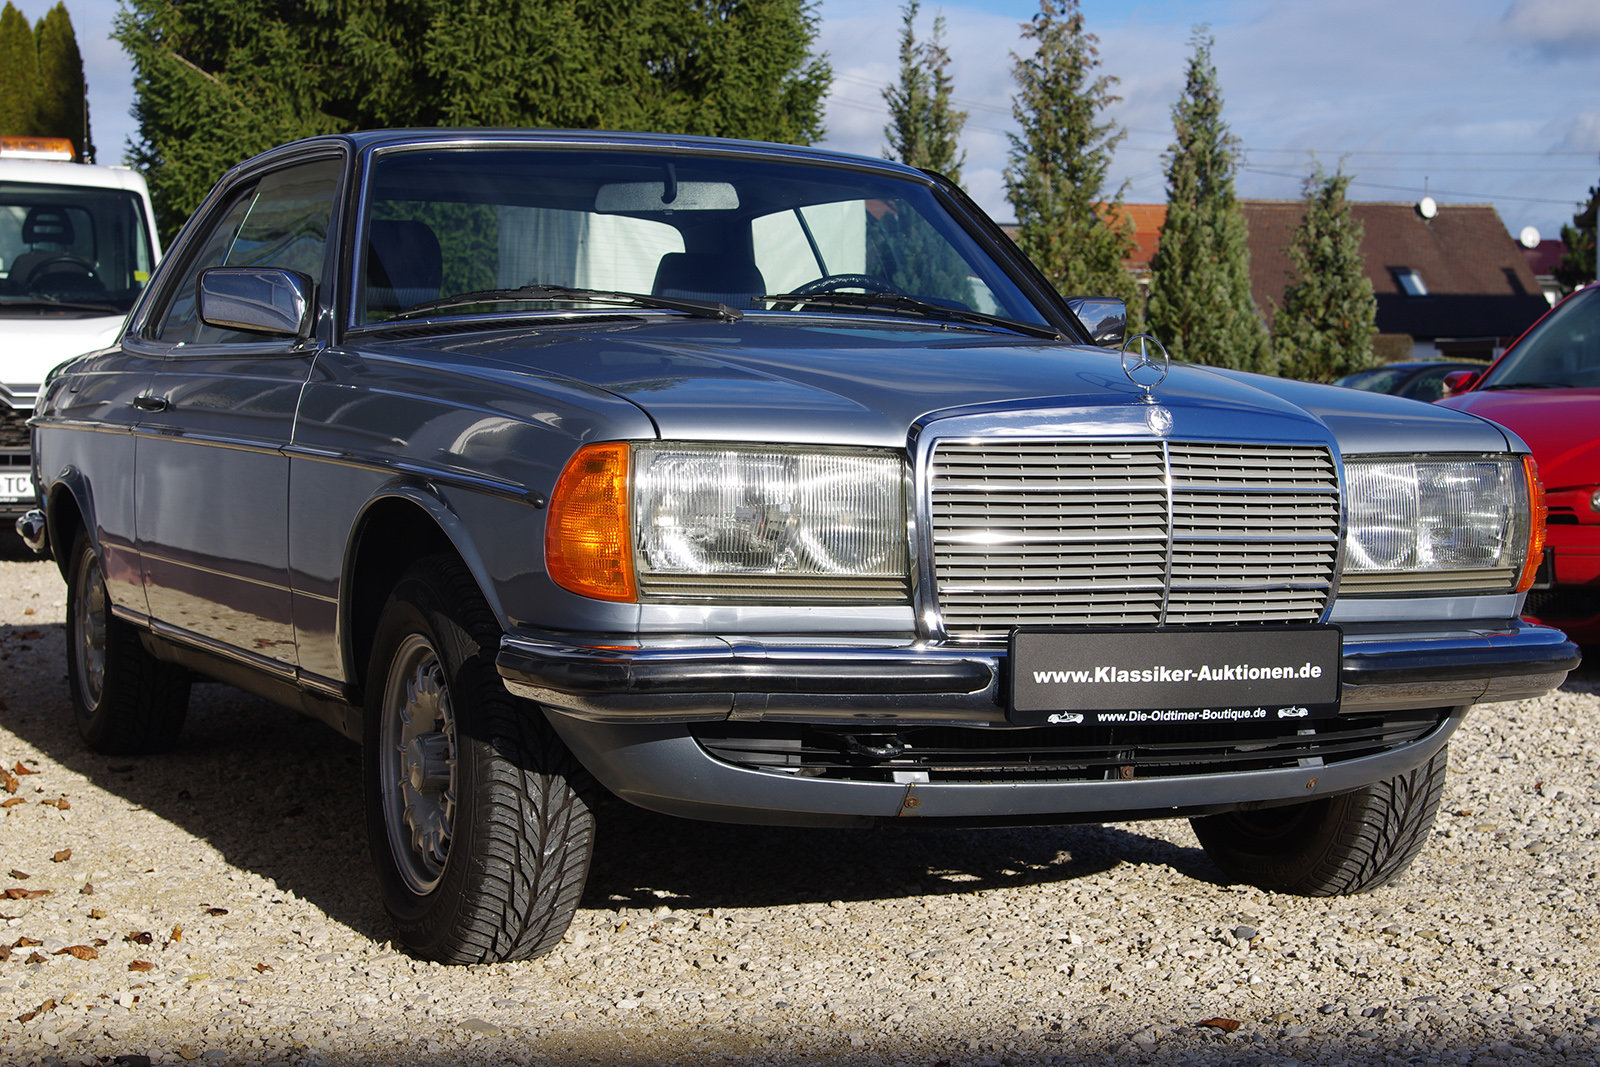 1983 Mercedes-Benz 230 CE - C123 - LHD - only 3 owners in 35 year SOLD (picture 3 of 6)